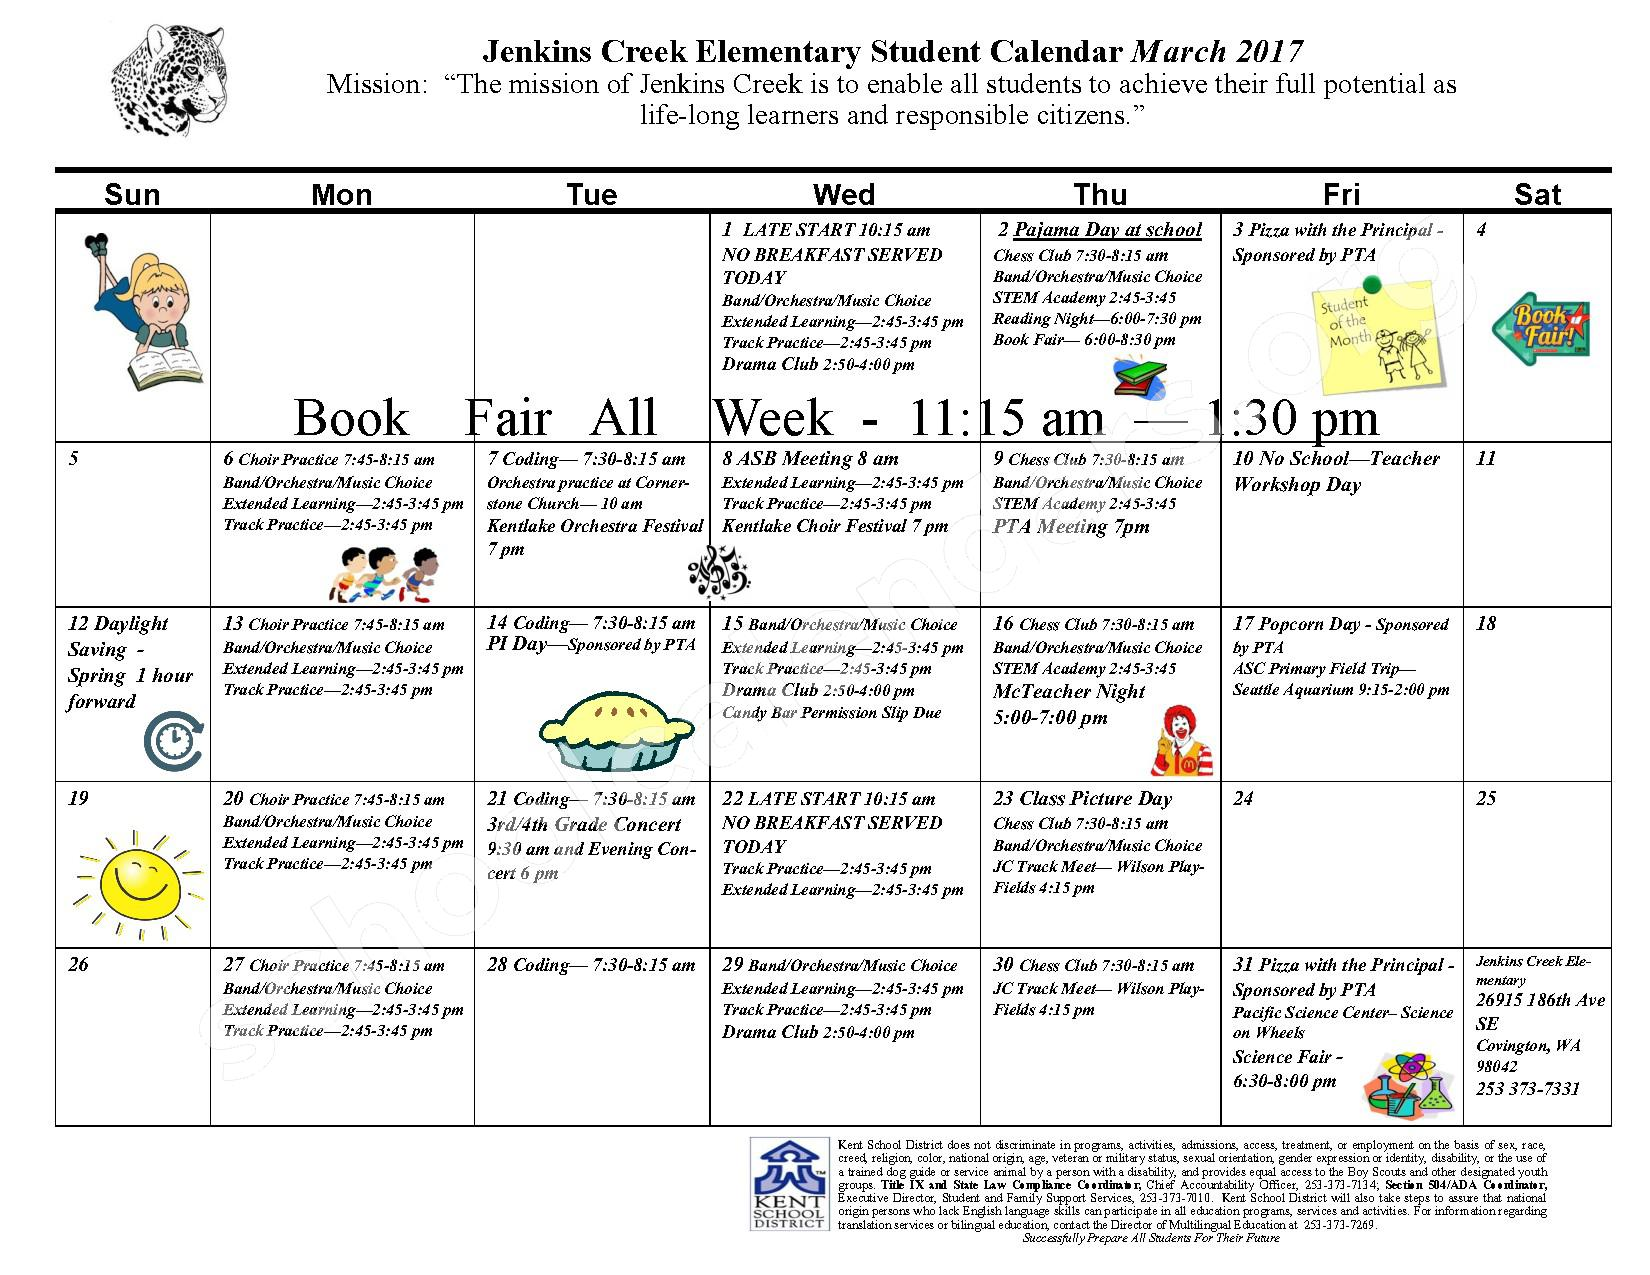 March 2017 Jenkins Creek Elementary Student Calendar – Jenkins Creek Elementary School – page 1